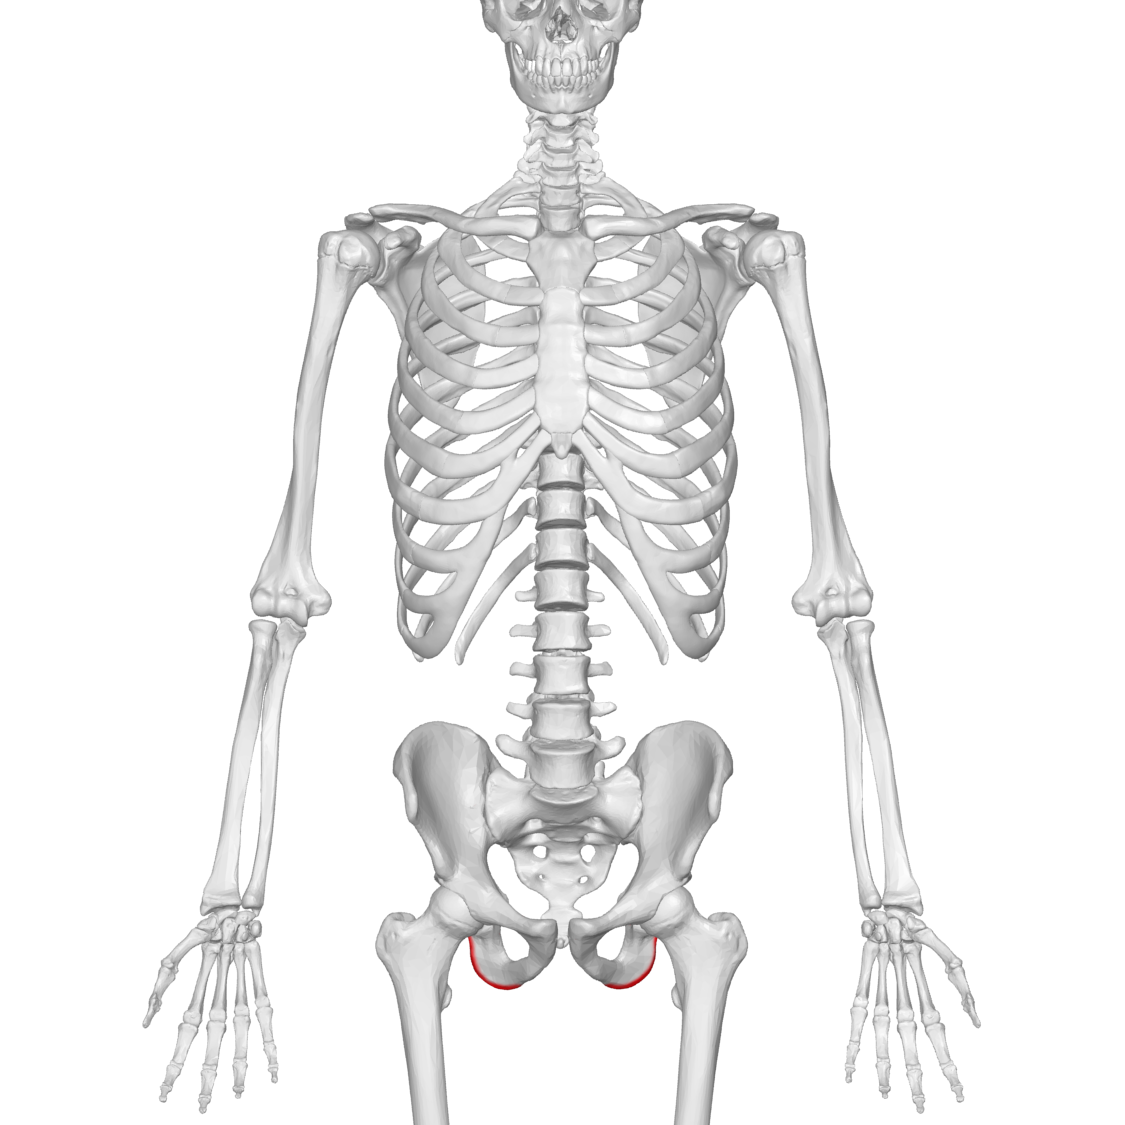 File:Ischial tuberosity 01 anterior view.png - Wikimedia Commons